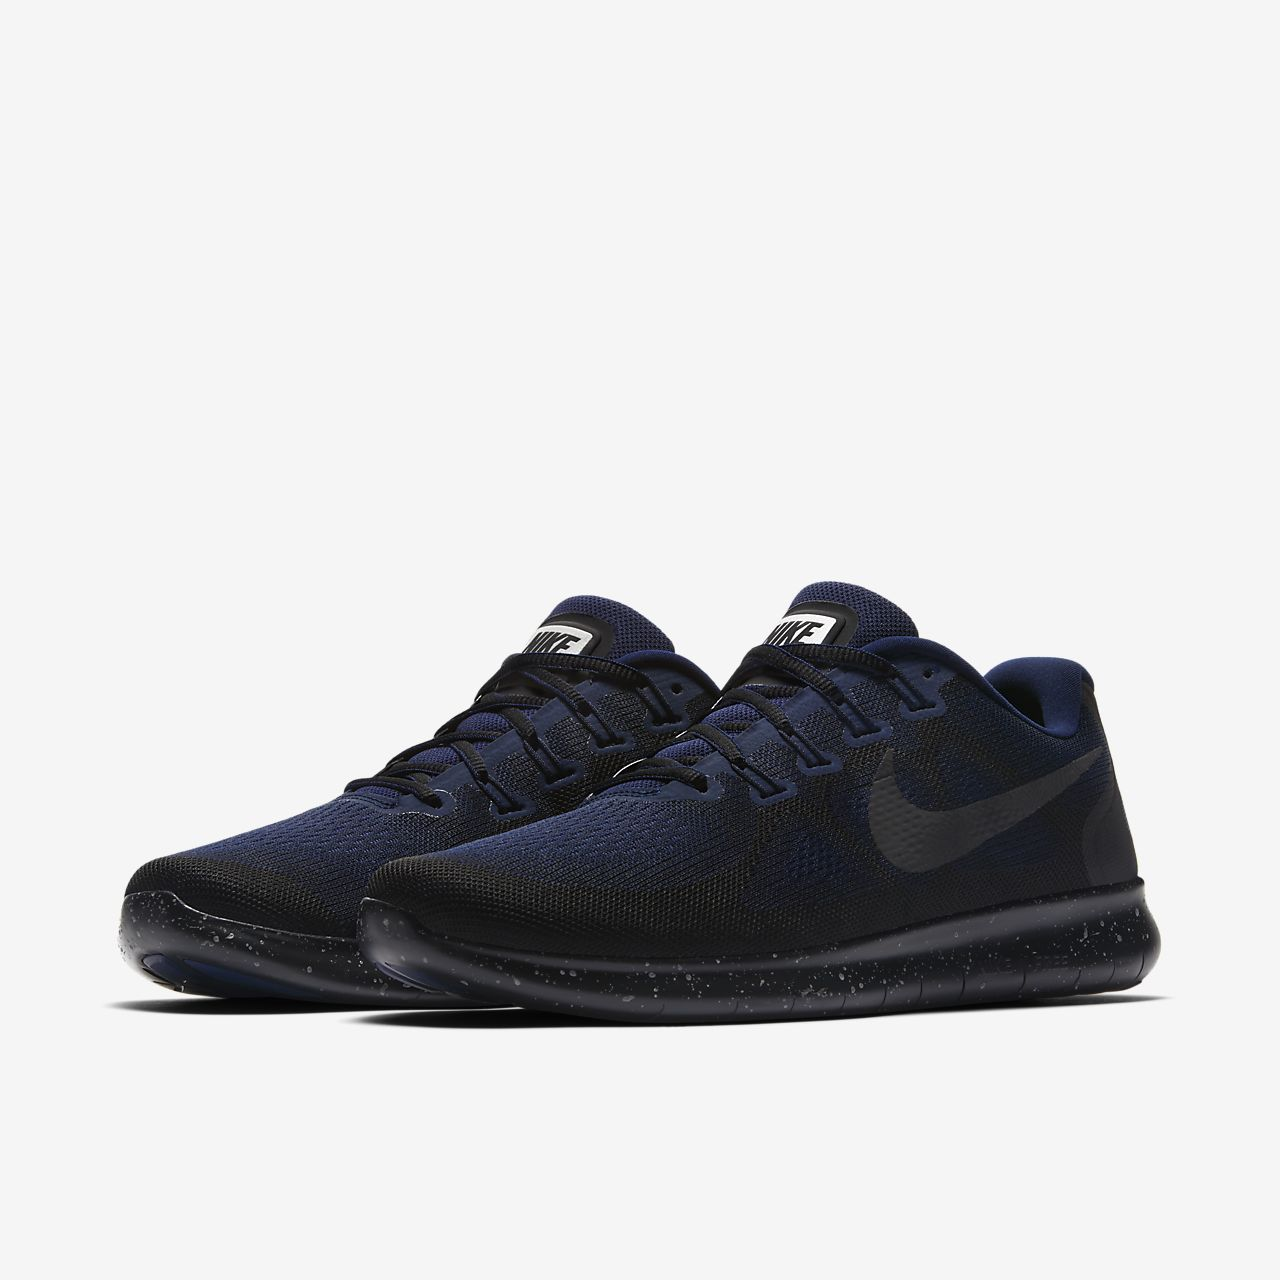 6cab0cc043bb Nike Free Run Shield Mens - MHAMD MHAMD